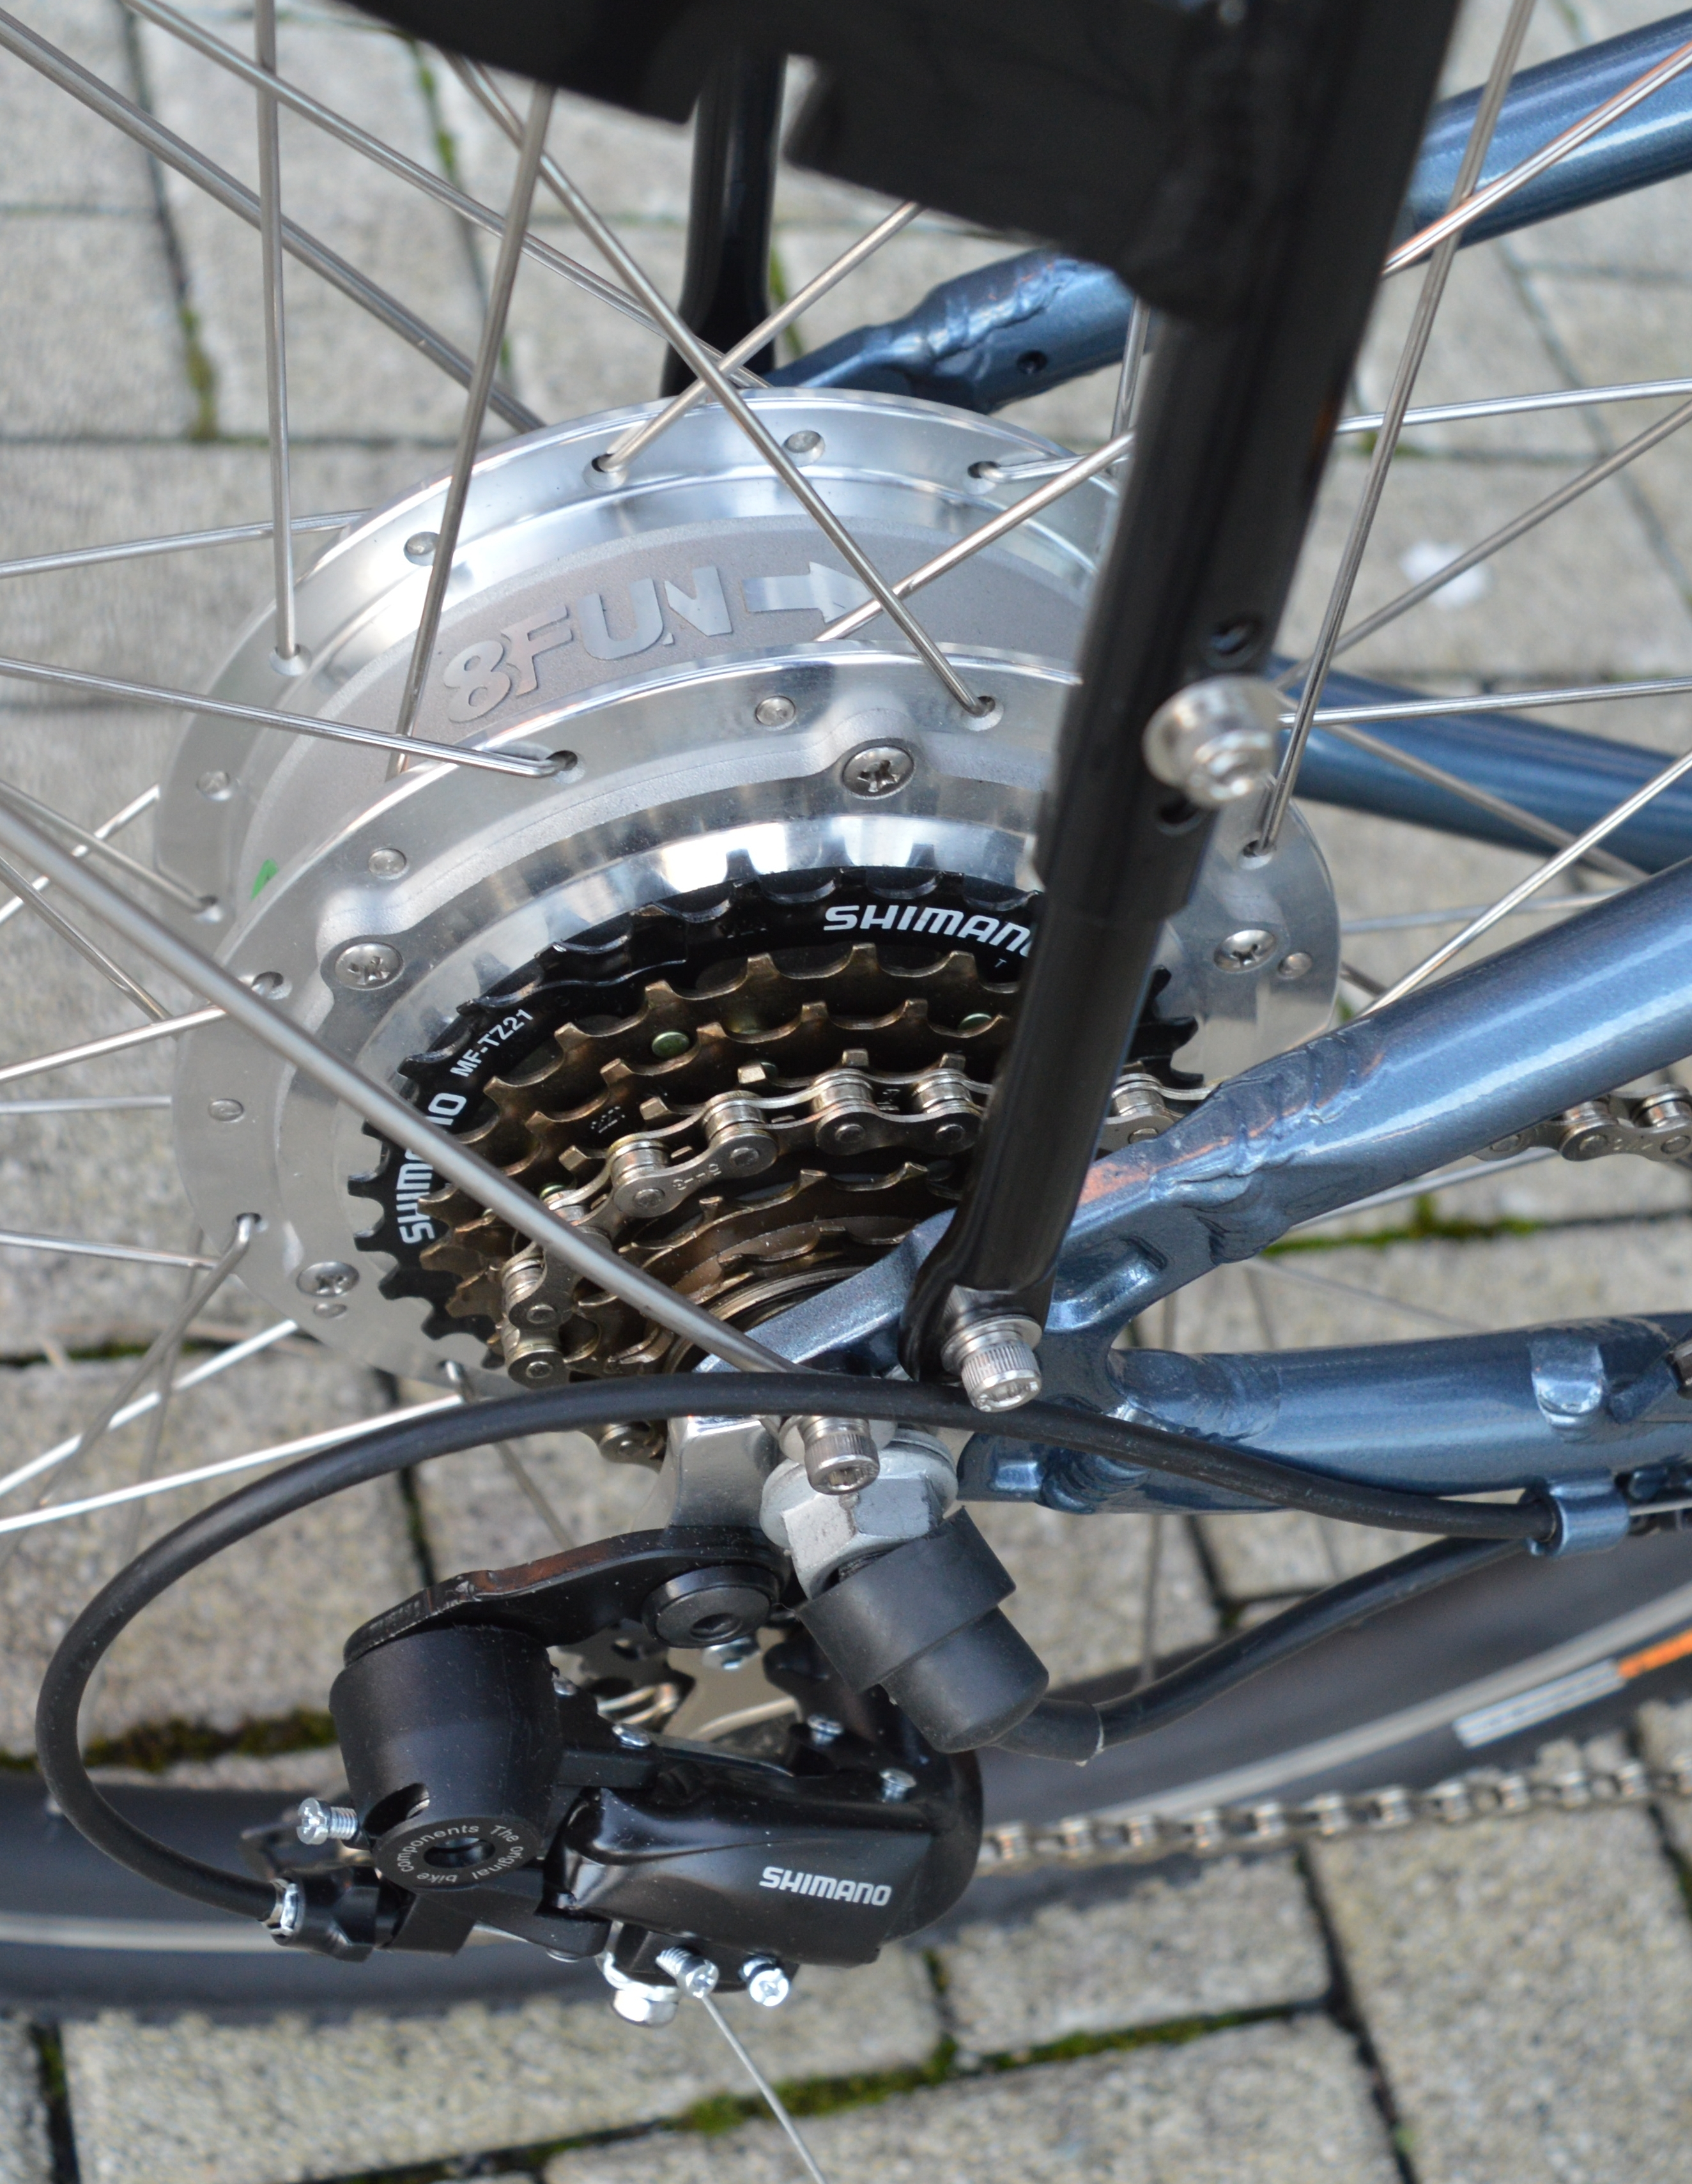 moter used in bicycle